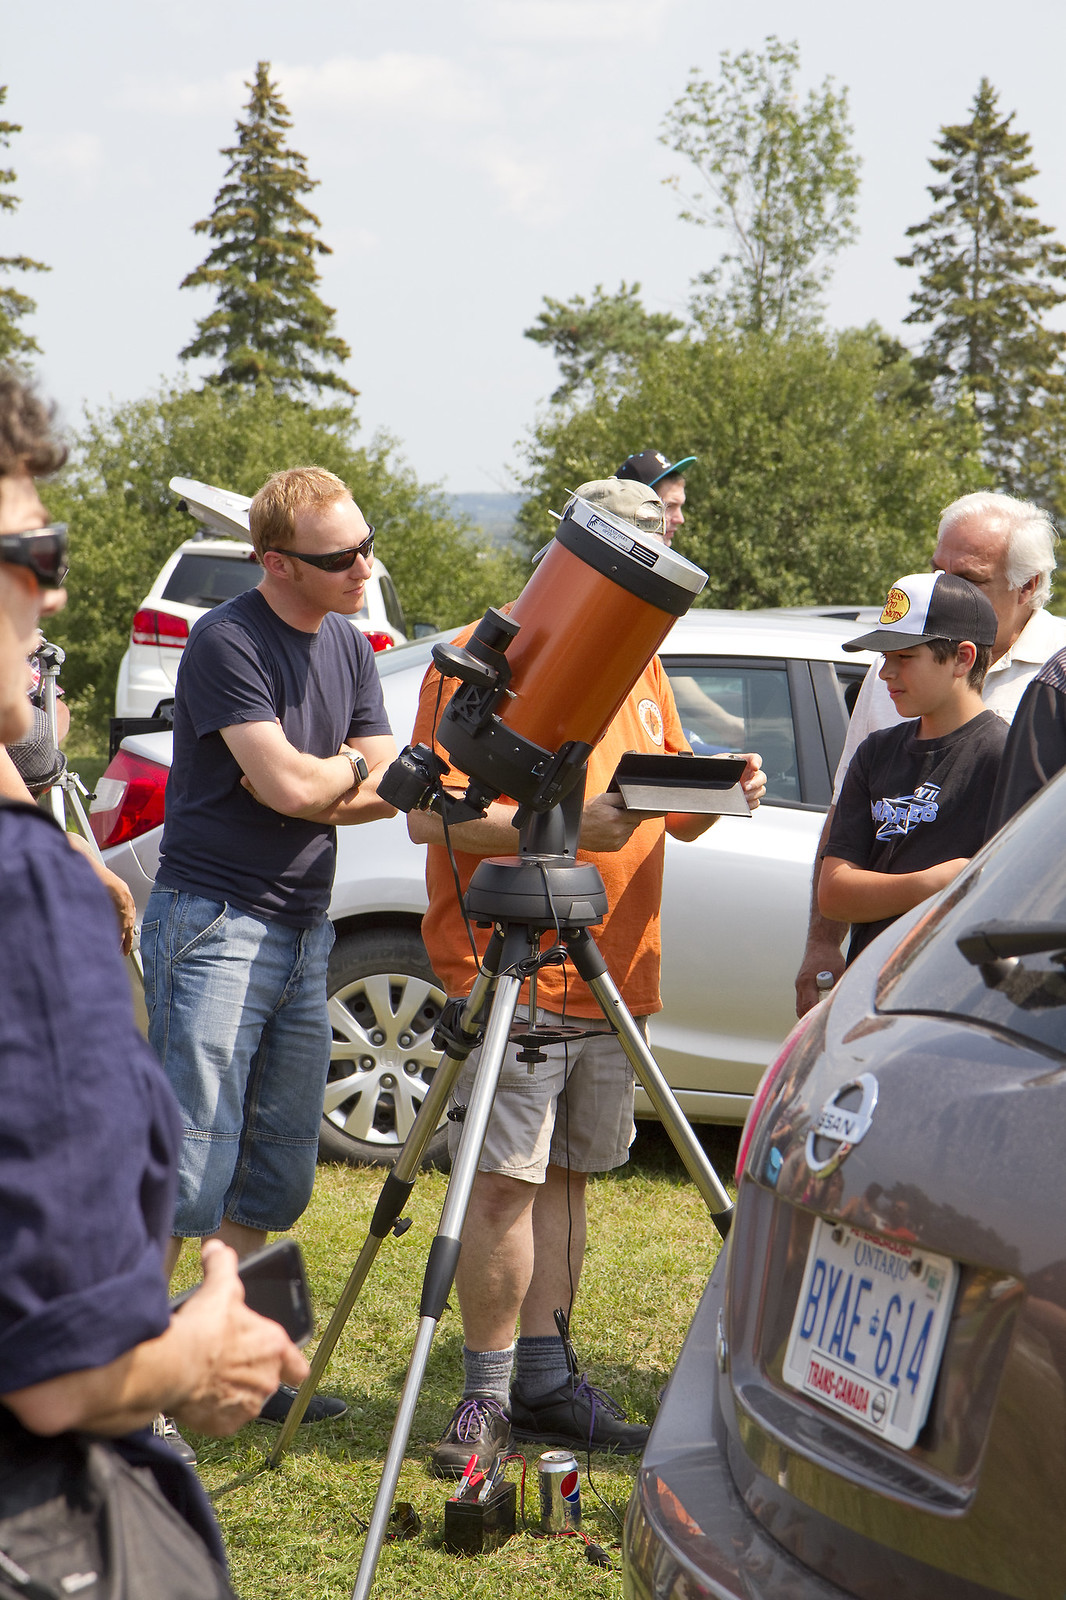 solar eclipse - telescope with camera